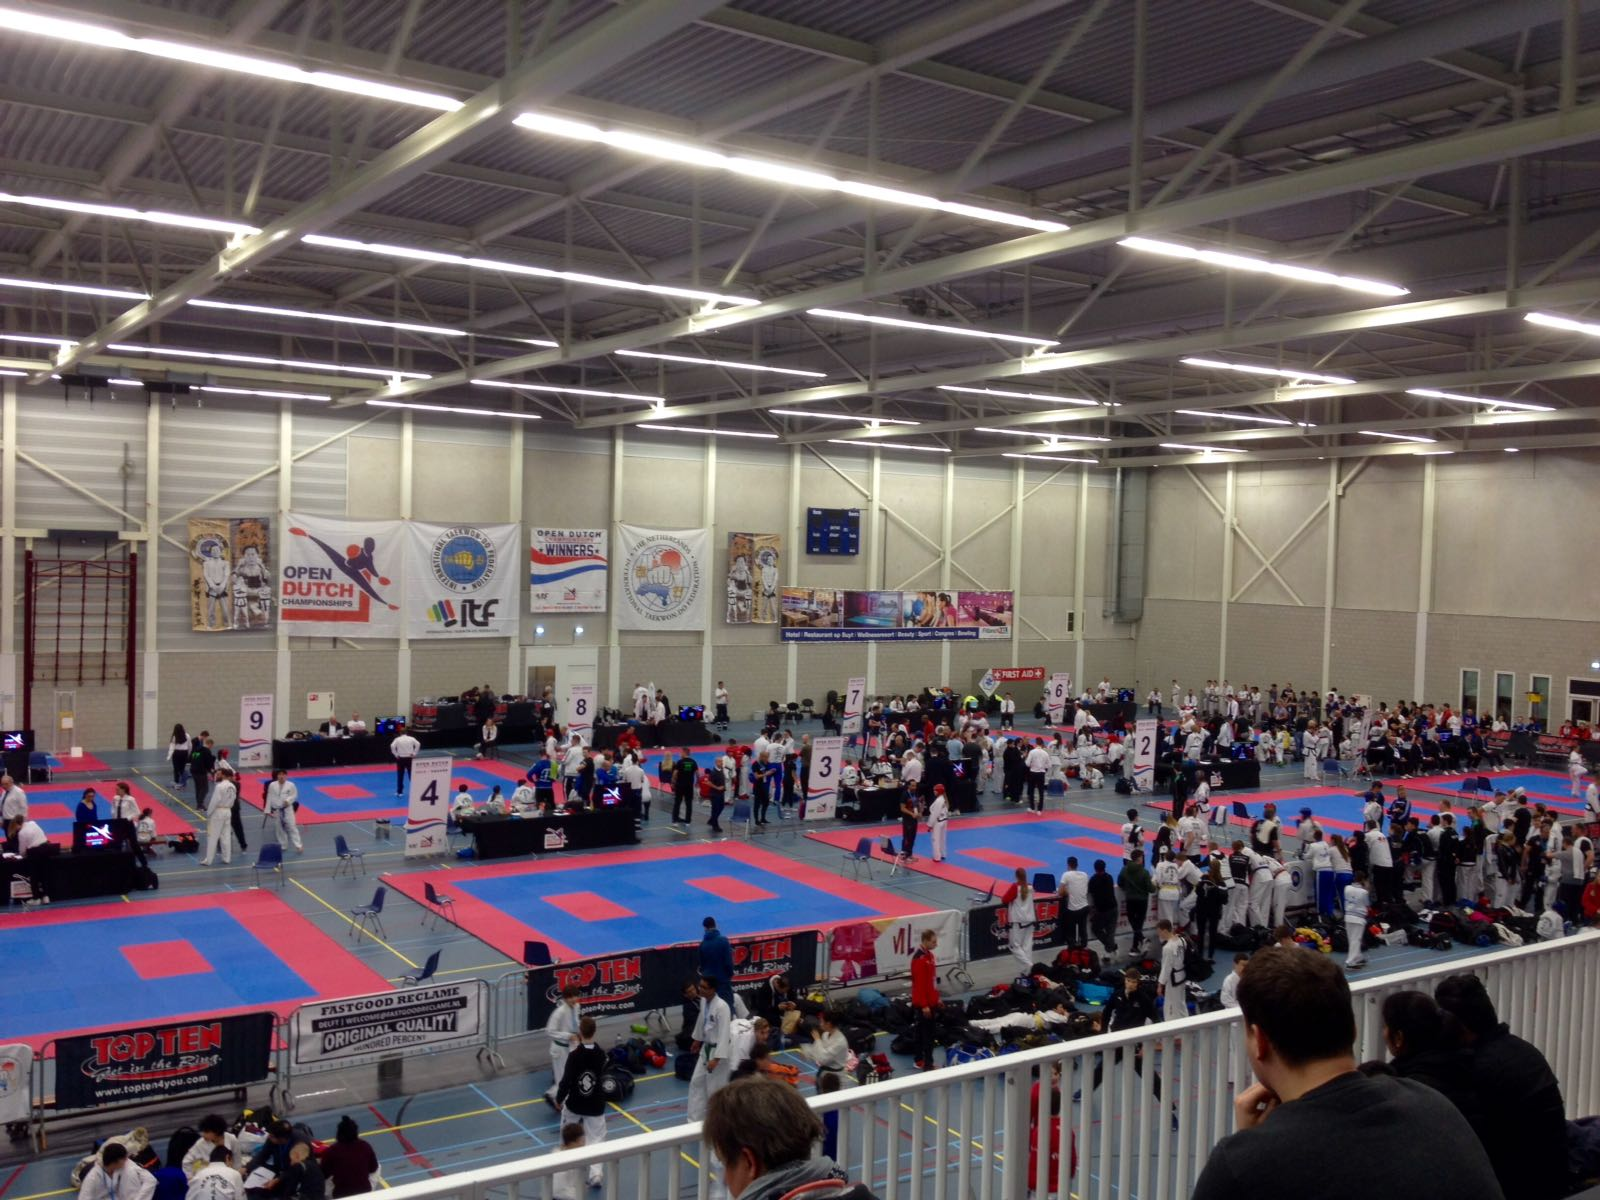 Open Dutch 2018